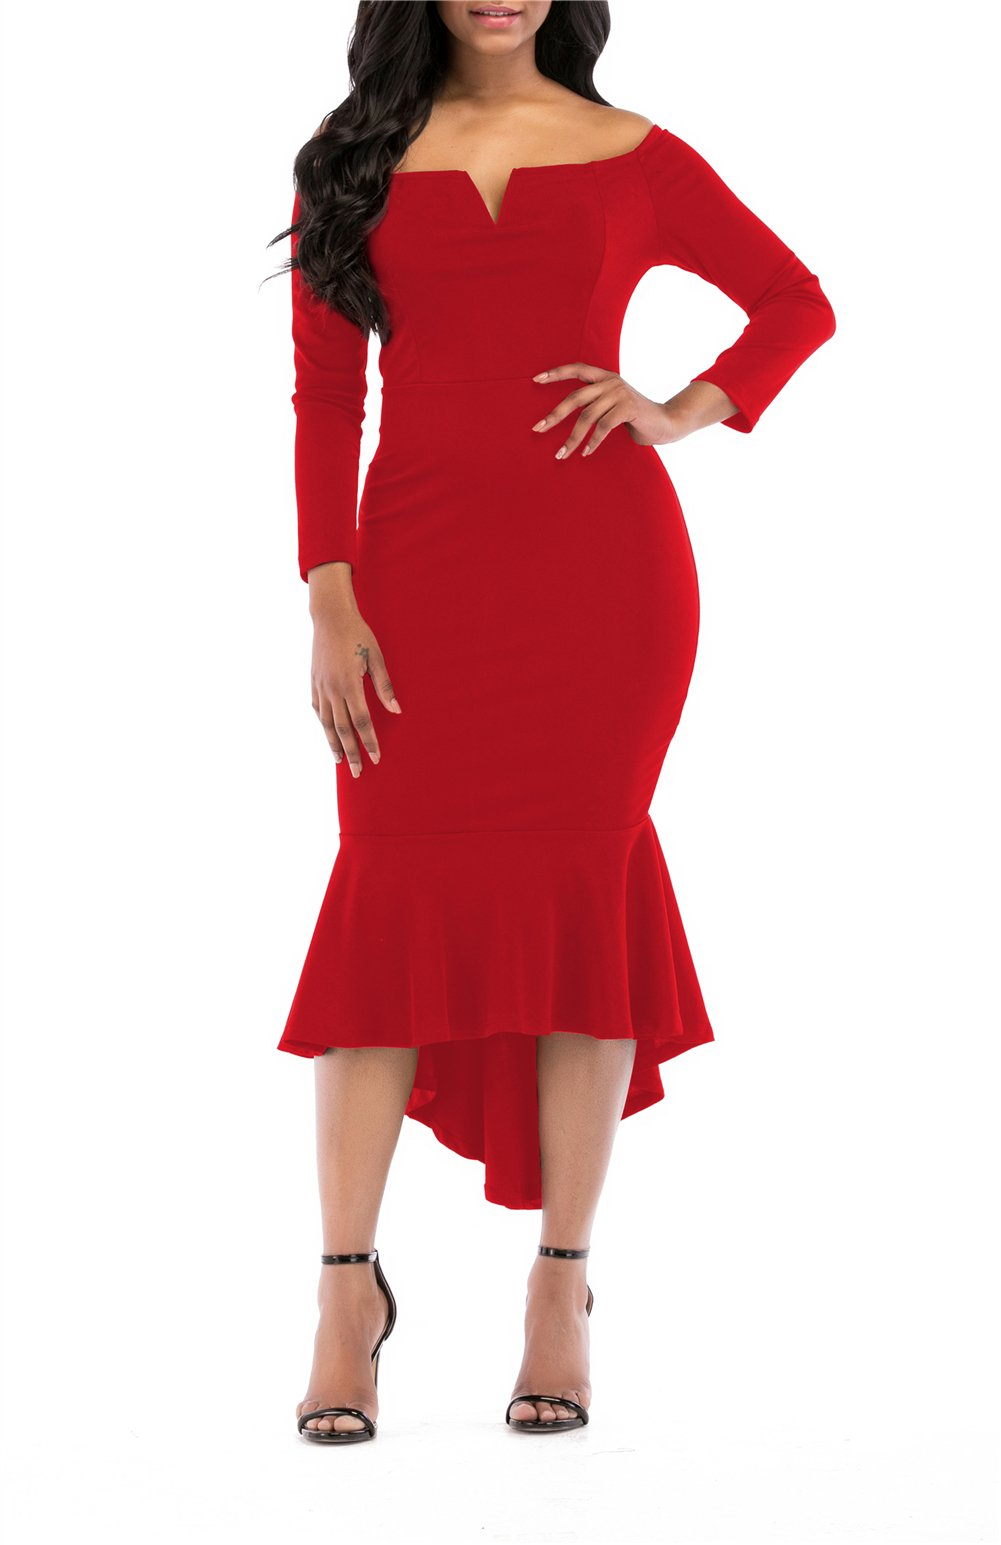 Red Dress - Women's Summer Sexy One Shoulder Ruffle Bodycon Midi Cocktail Dress